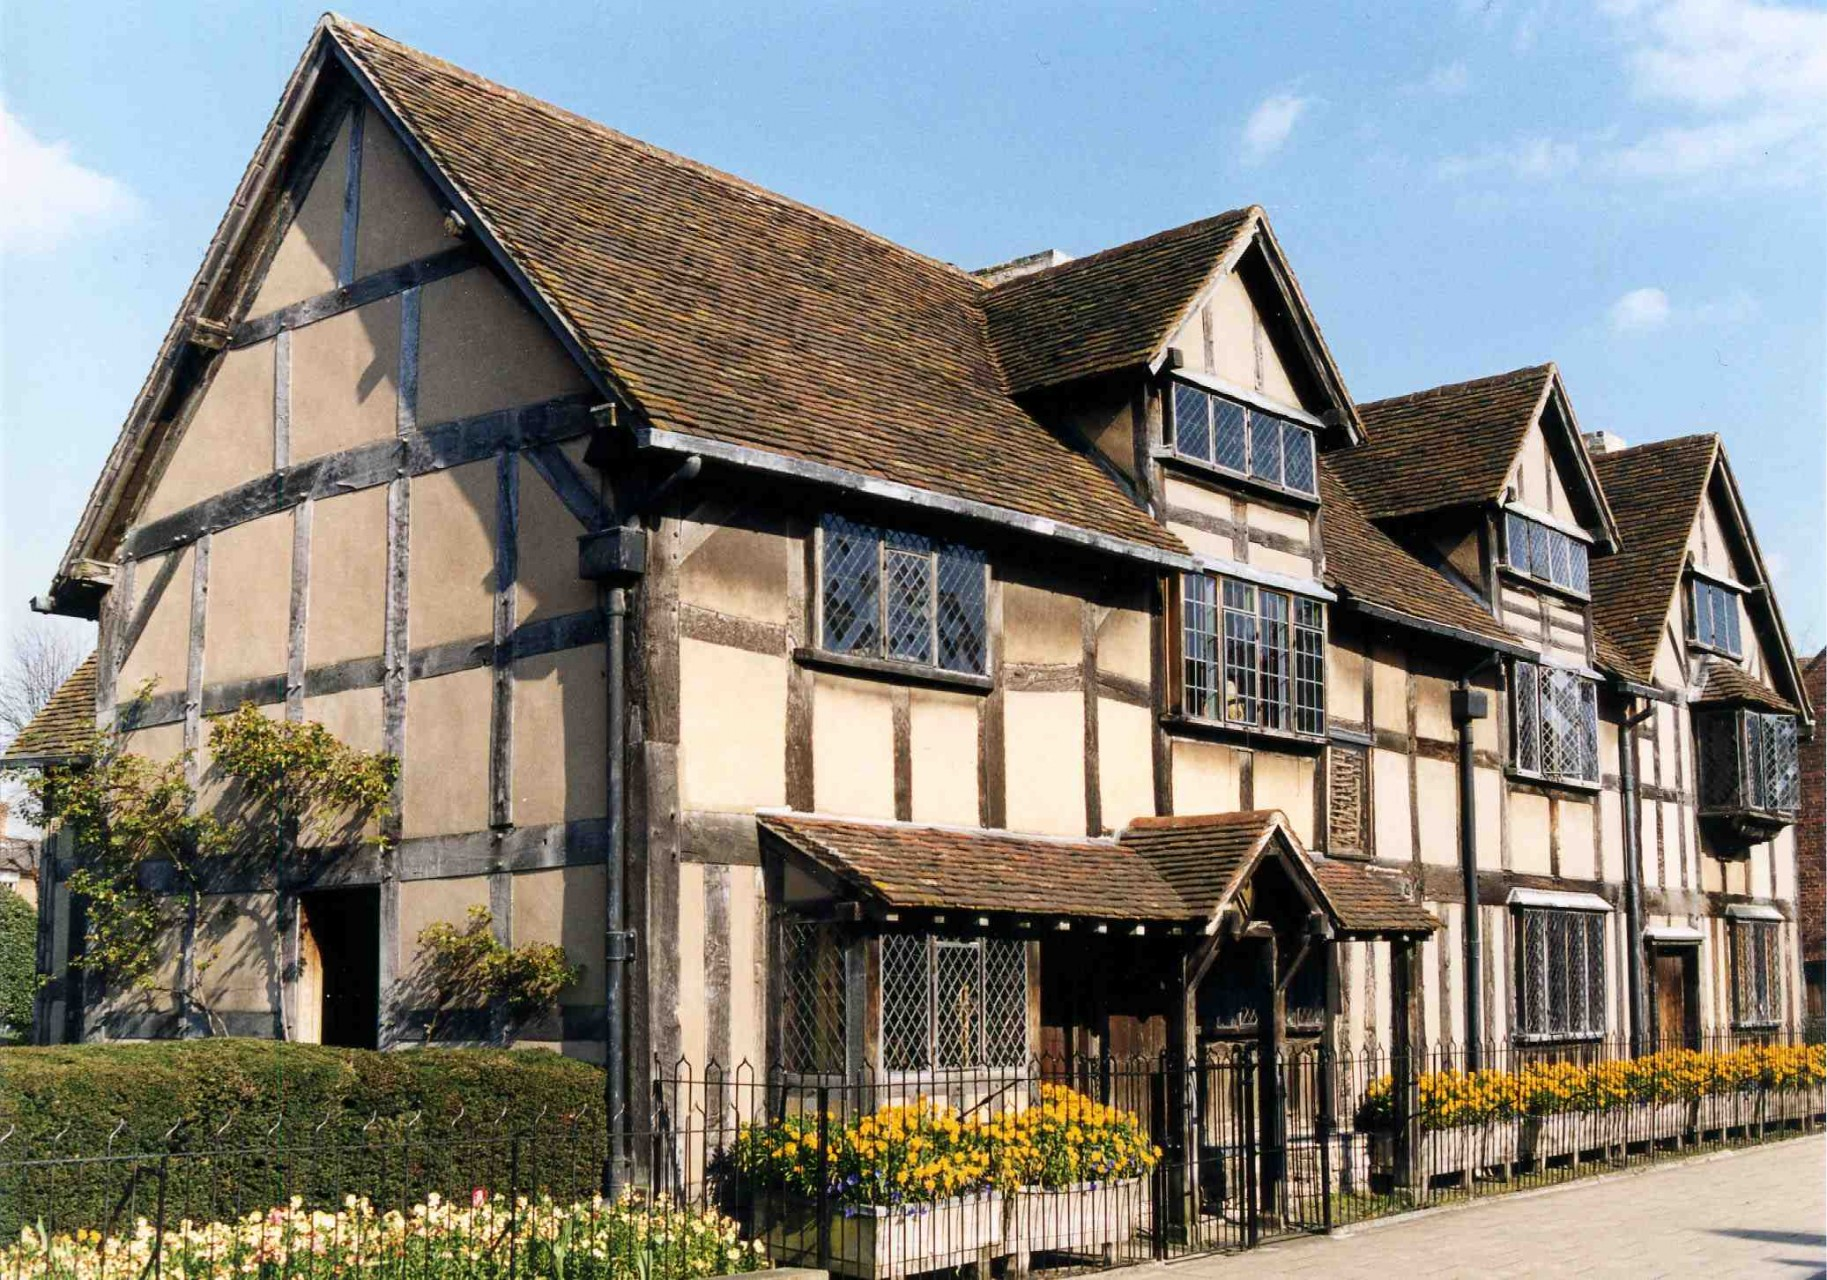 Shakespeare Birthplace, Stratford Upon Avon